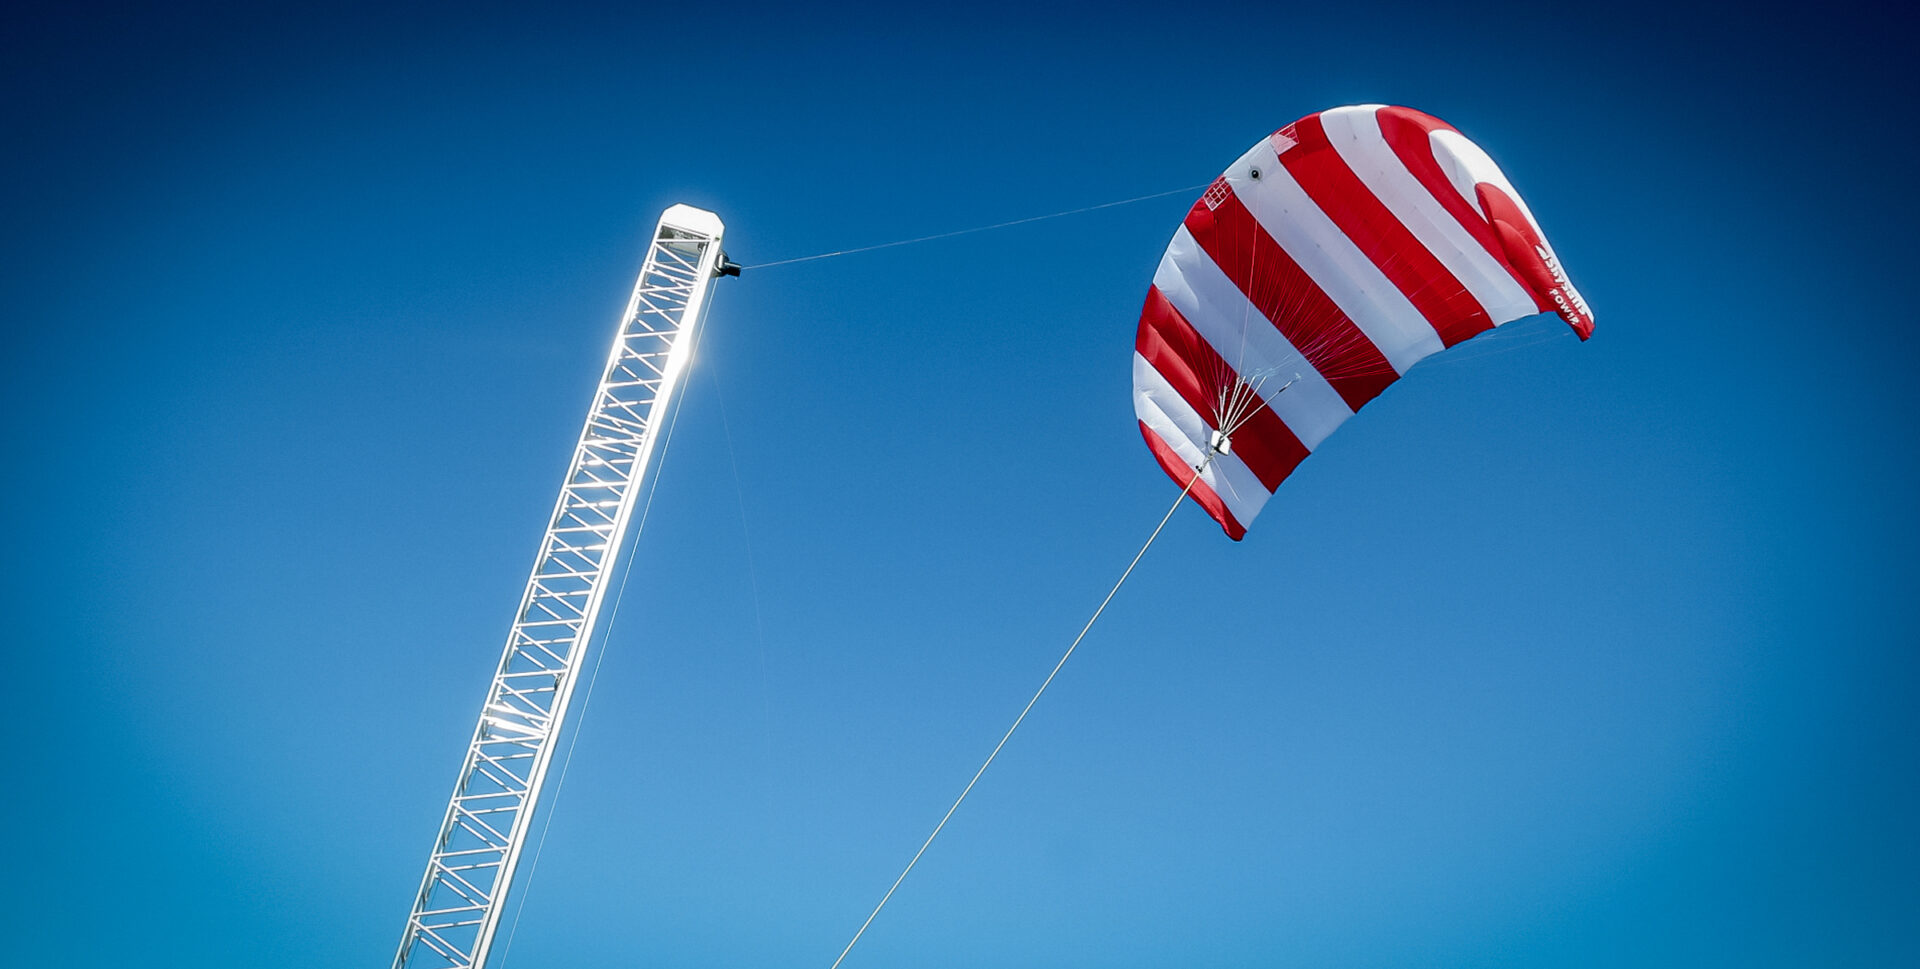 Airborne wind energy is harvested by a power kite.